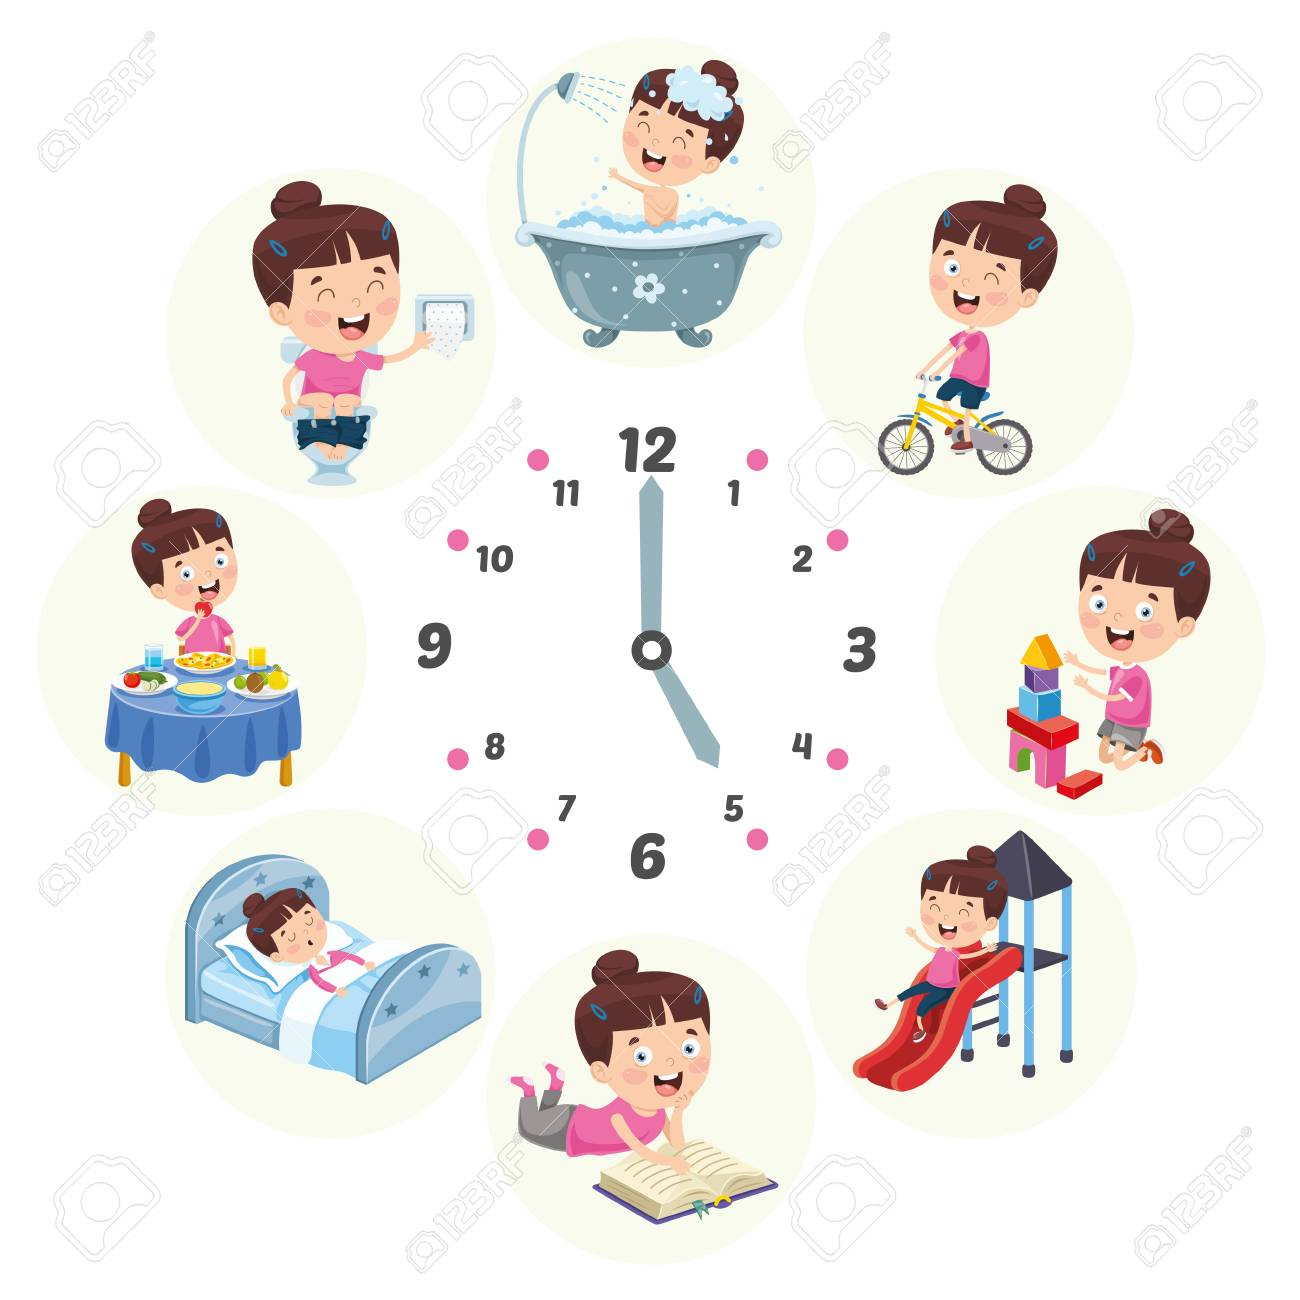 Vector Illustration Of Kids Daily Routine Activities - 114778568